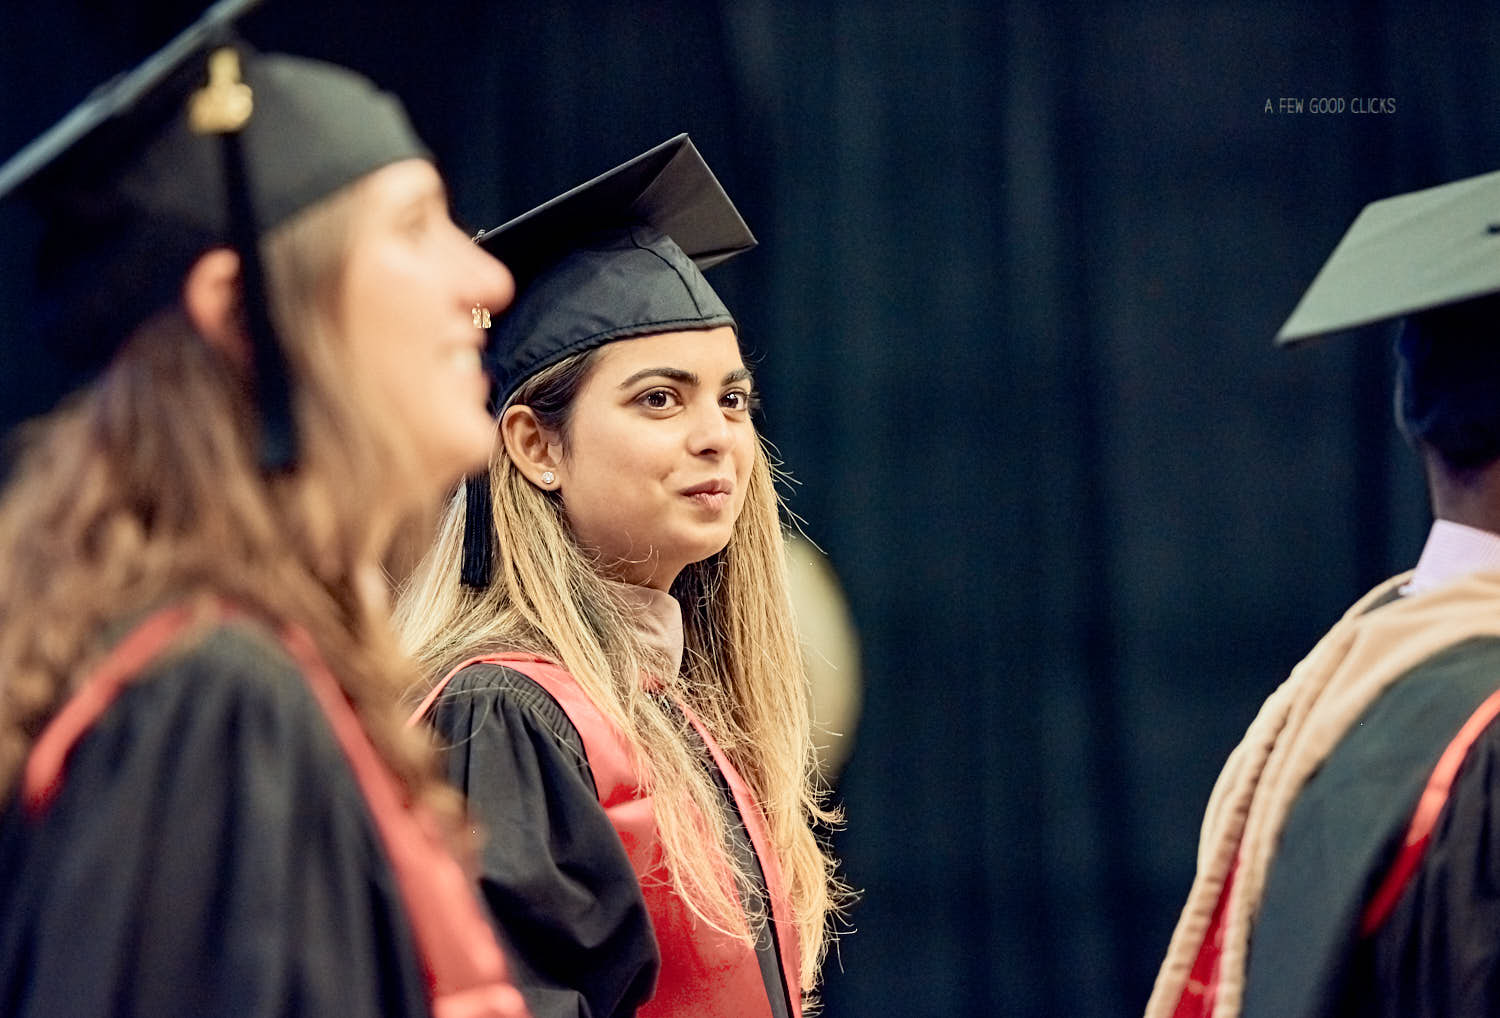 Isha-ambani-stanford-graduation-ceremony-photography-by-a-few-good-clicks 30.jpg